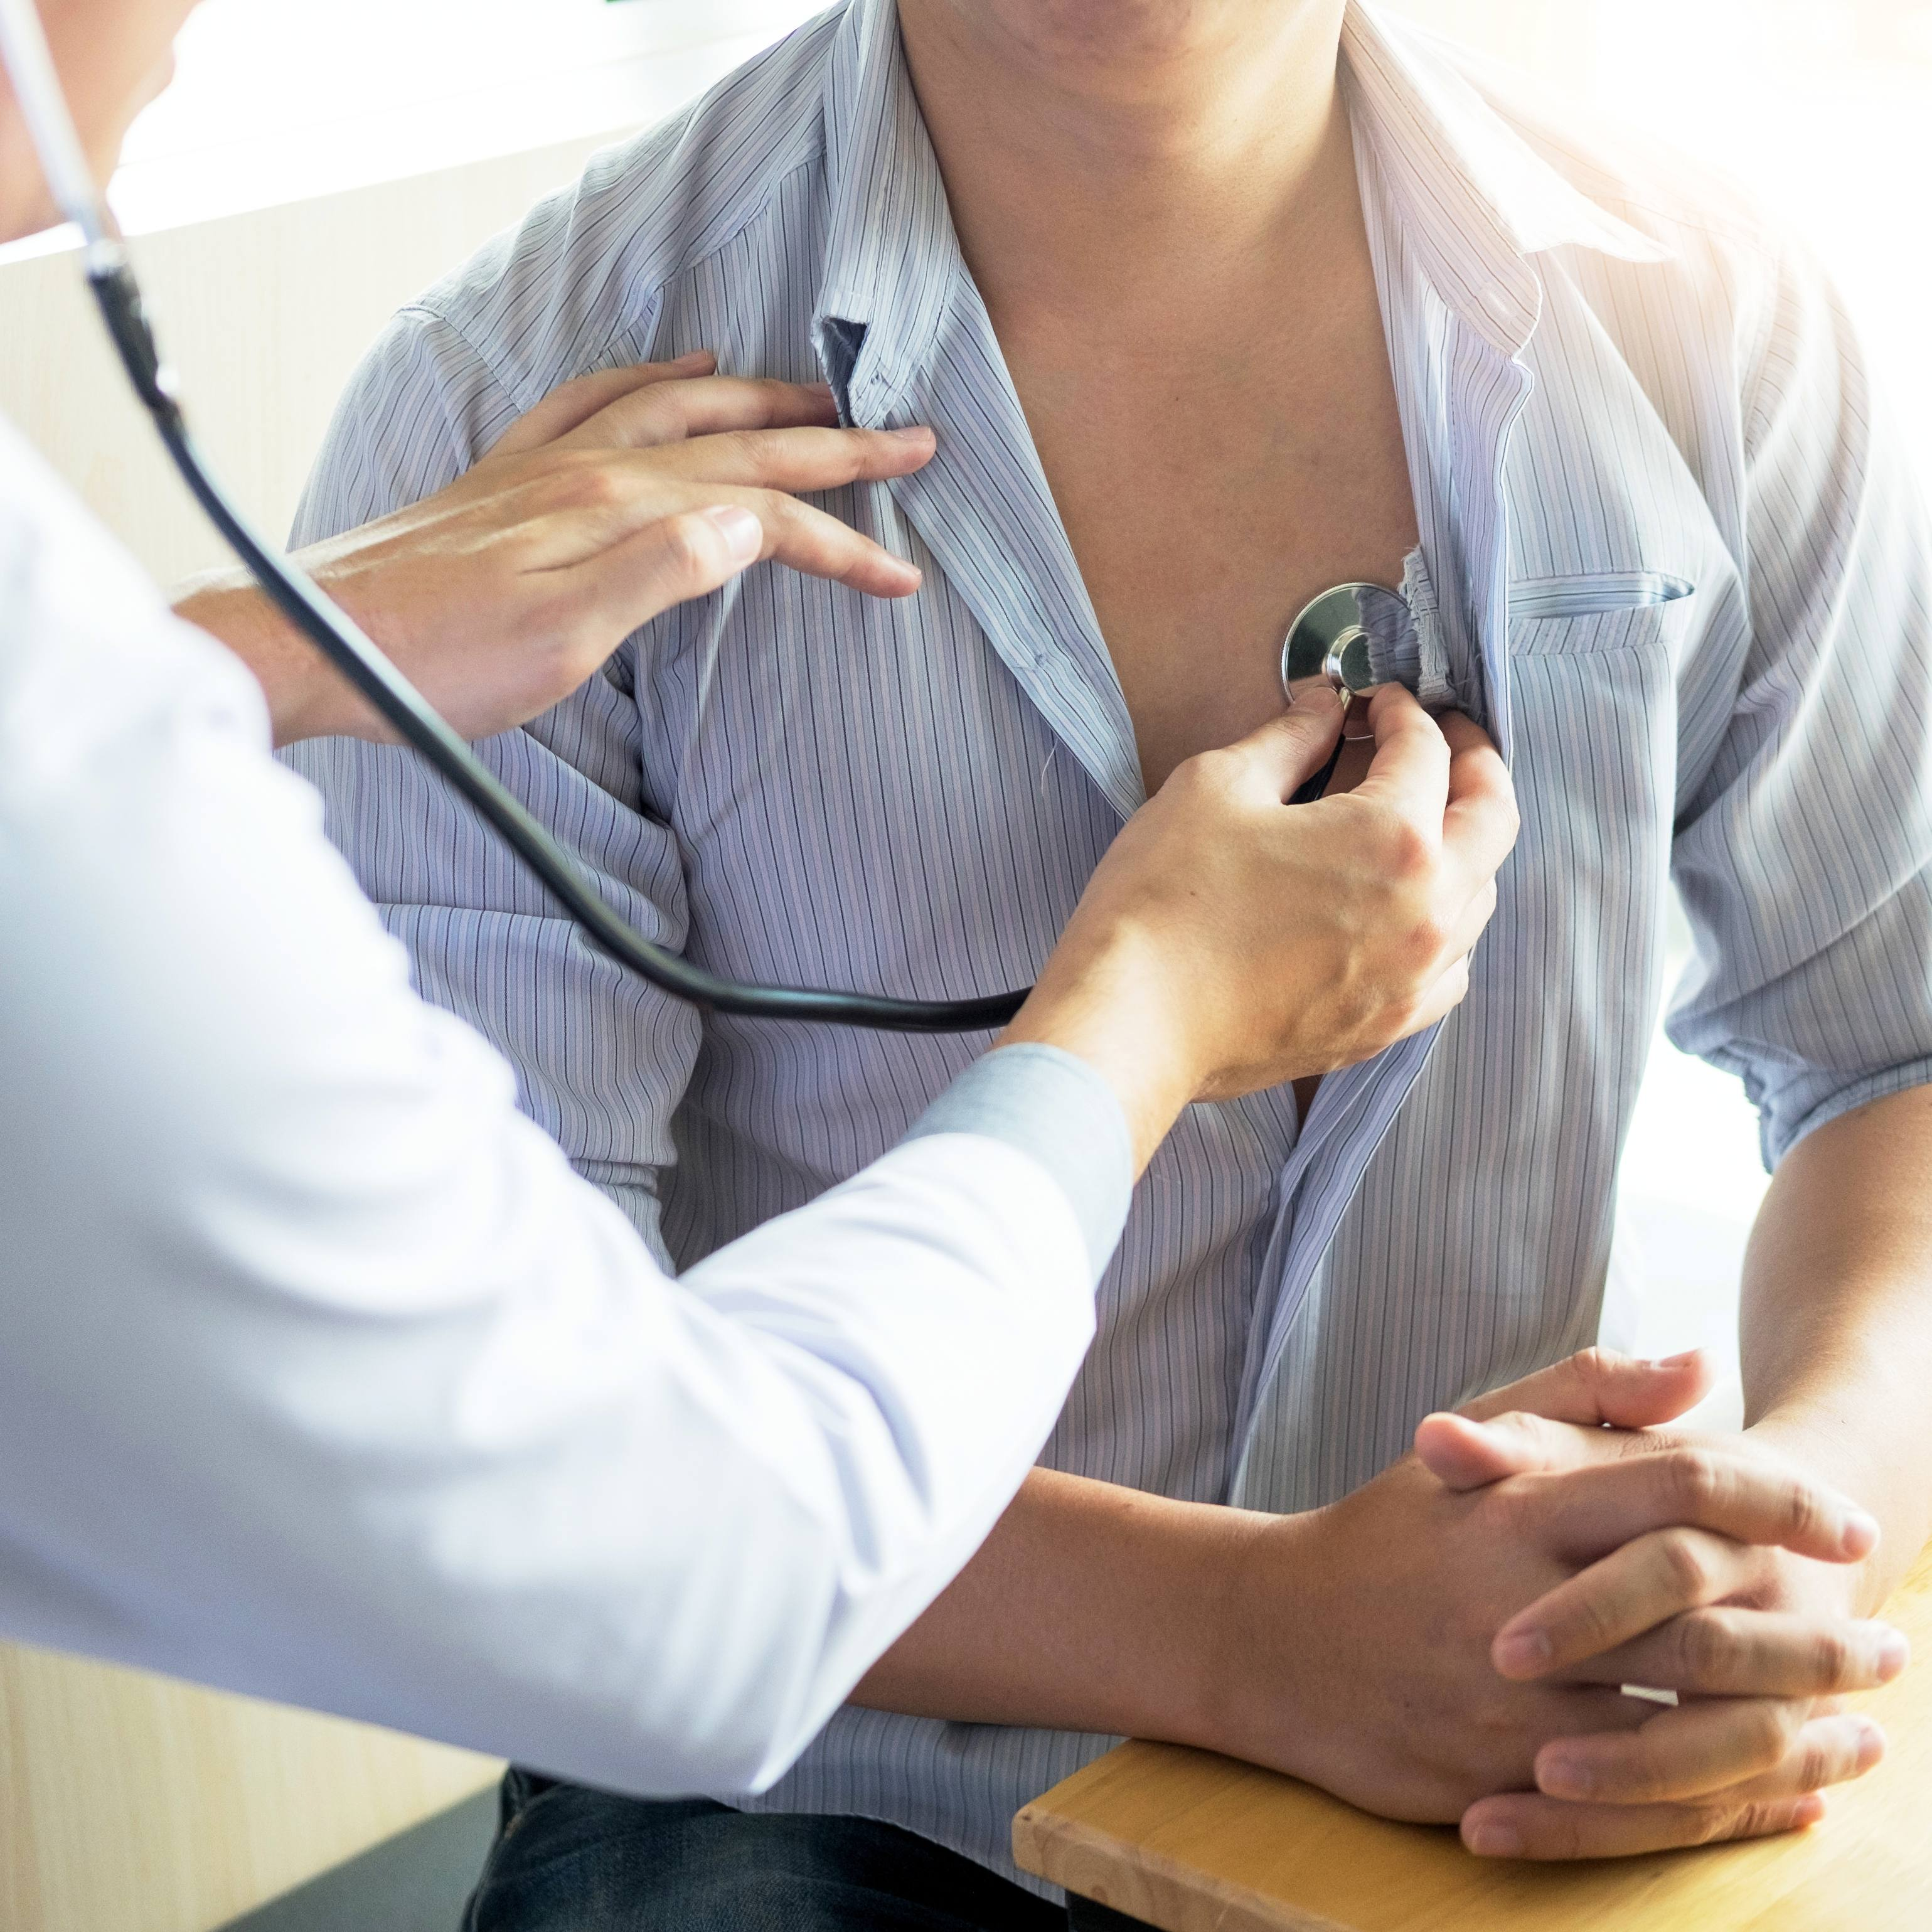 a young man in an exam room with his shirt open so a medical person, perhaps a doctor or nurse practitioner can listen to his heart with a stethoscope